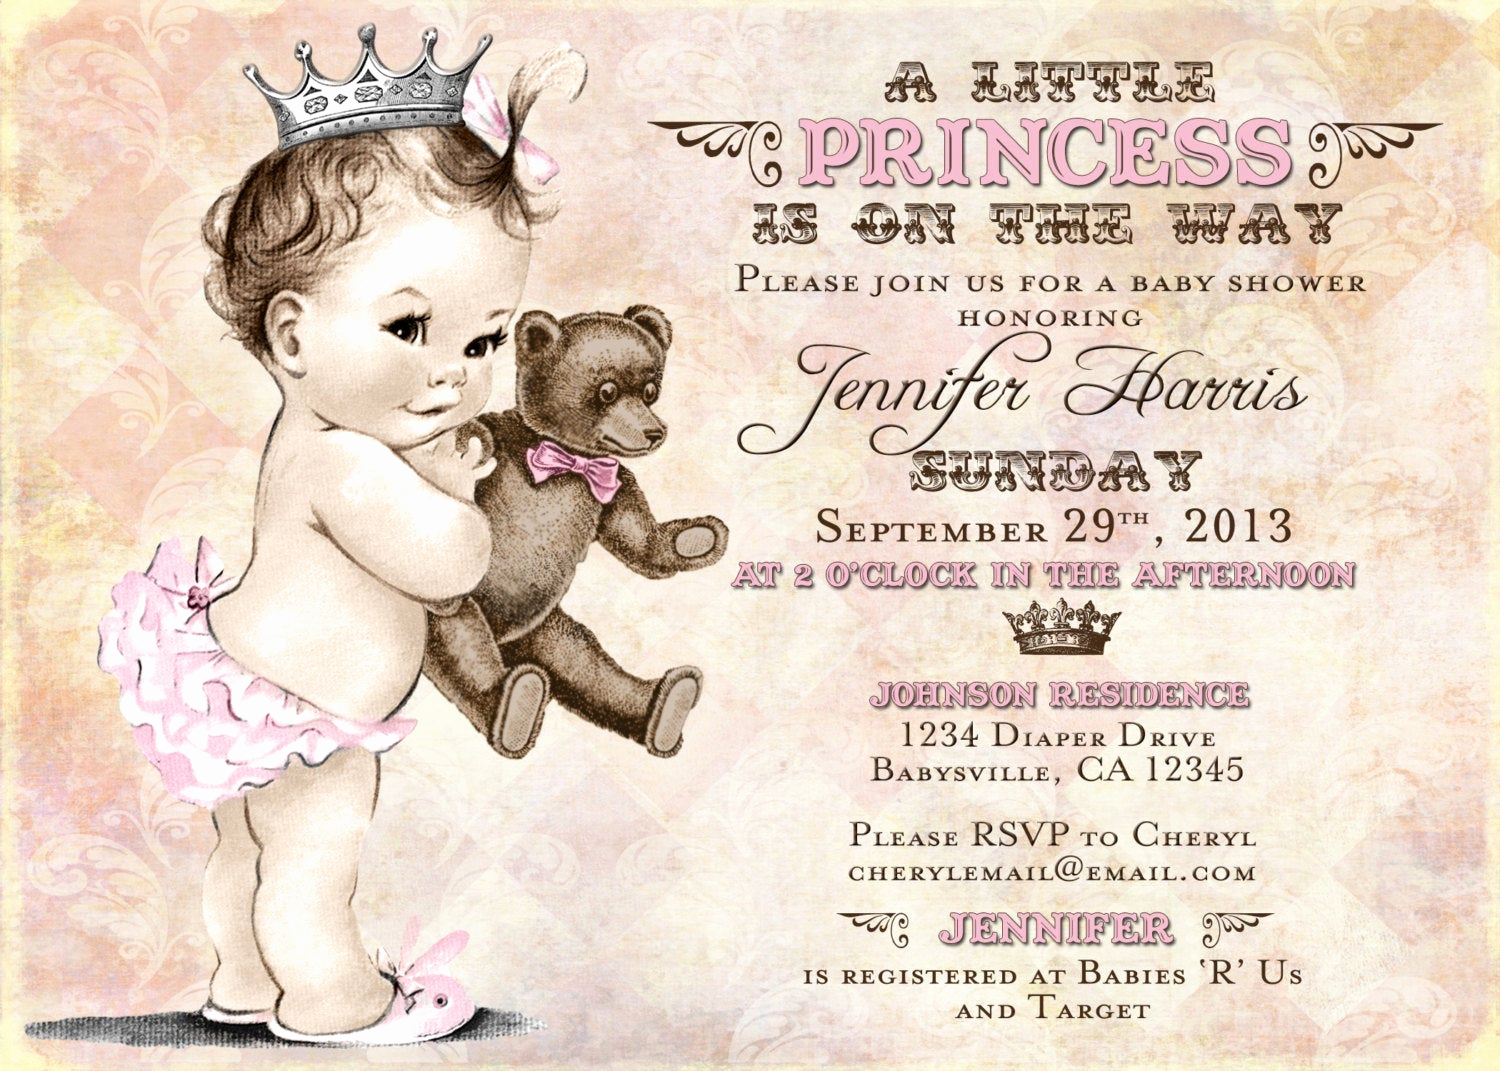 Princess Baby Shower Invitation Wording Elegant Teddy Bear Baby Shower Invitation for Girl Princess Crown